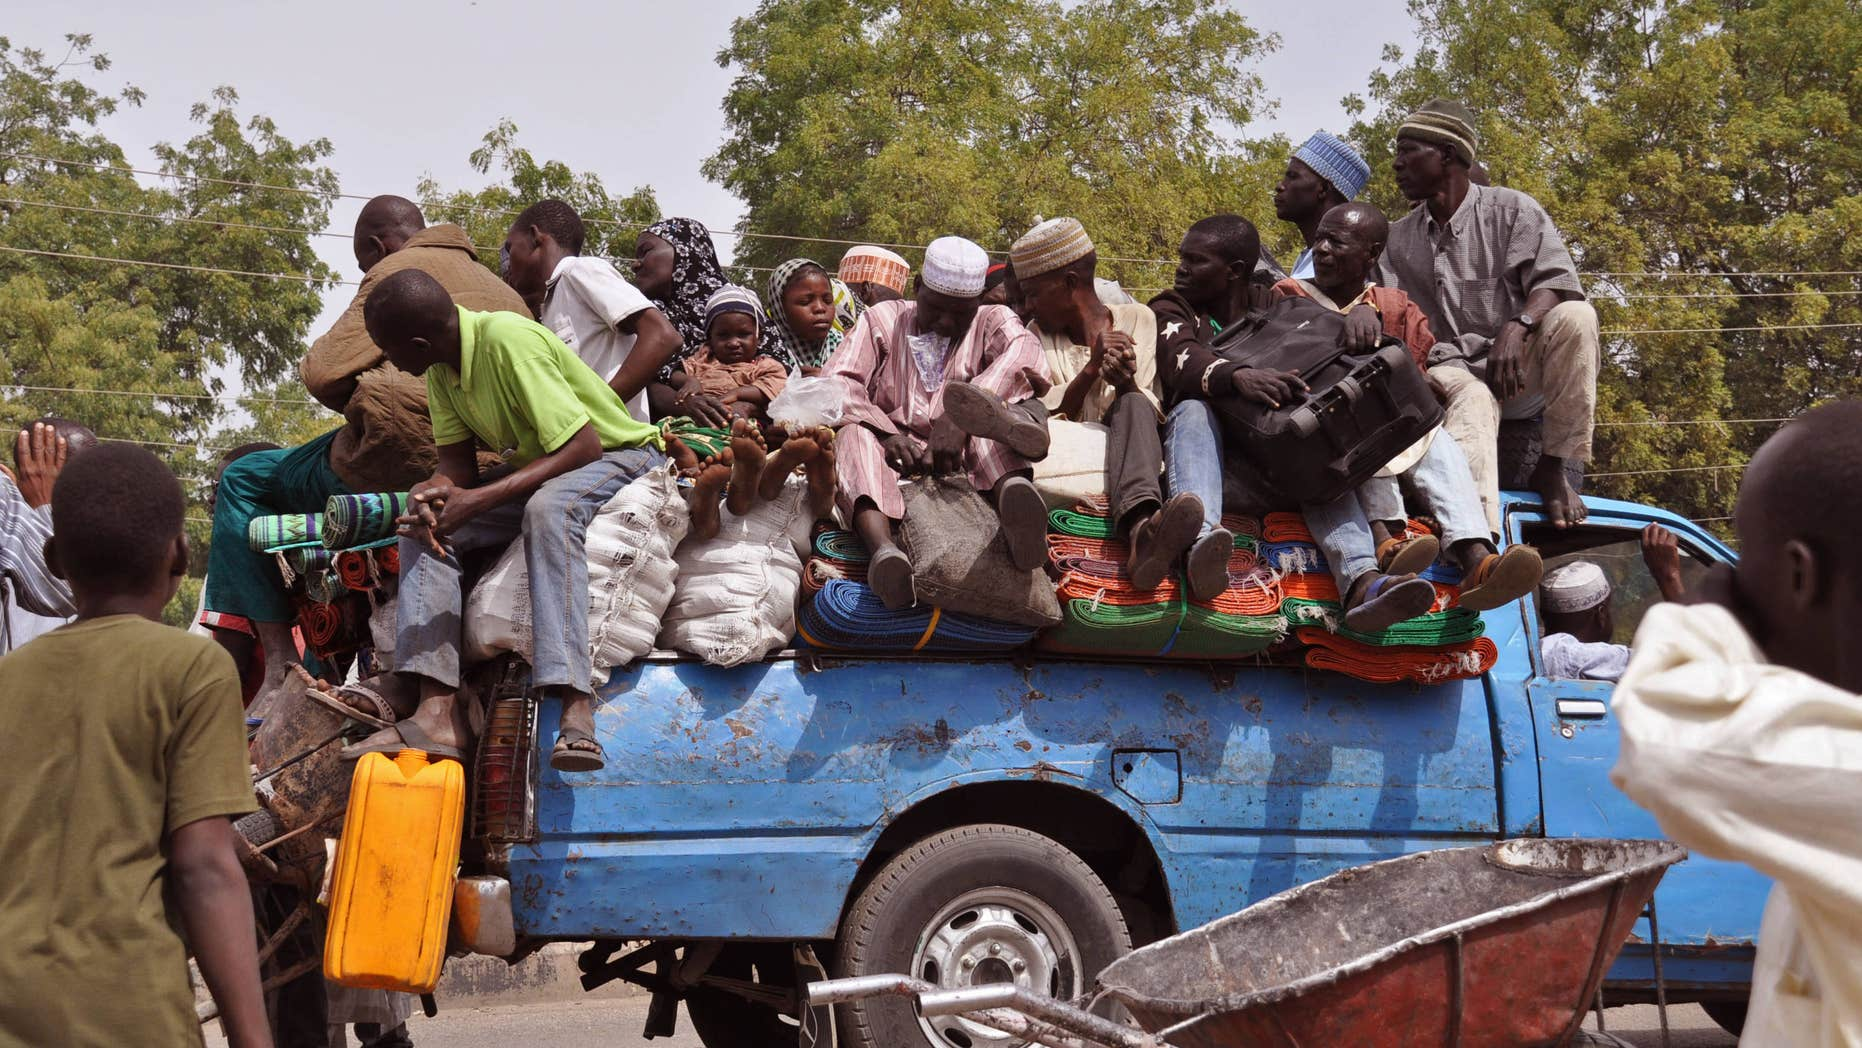 Jan. 27, 2015: villagers sit on the back of a small truck as they and others flee the recent violence near the city of Maiduguri, Nigeria.